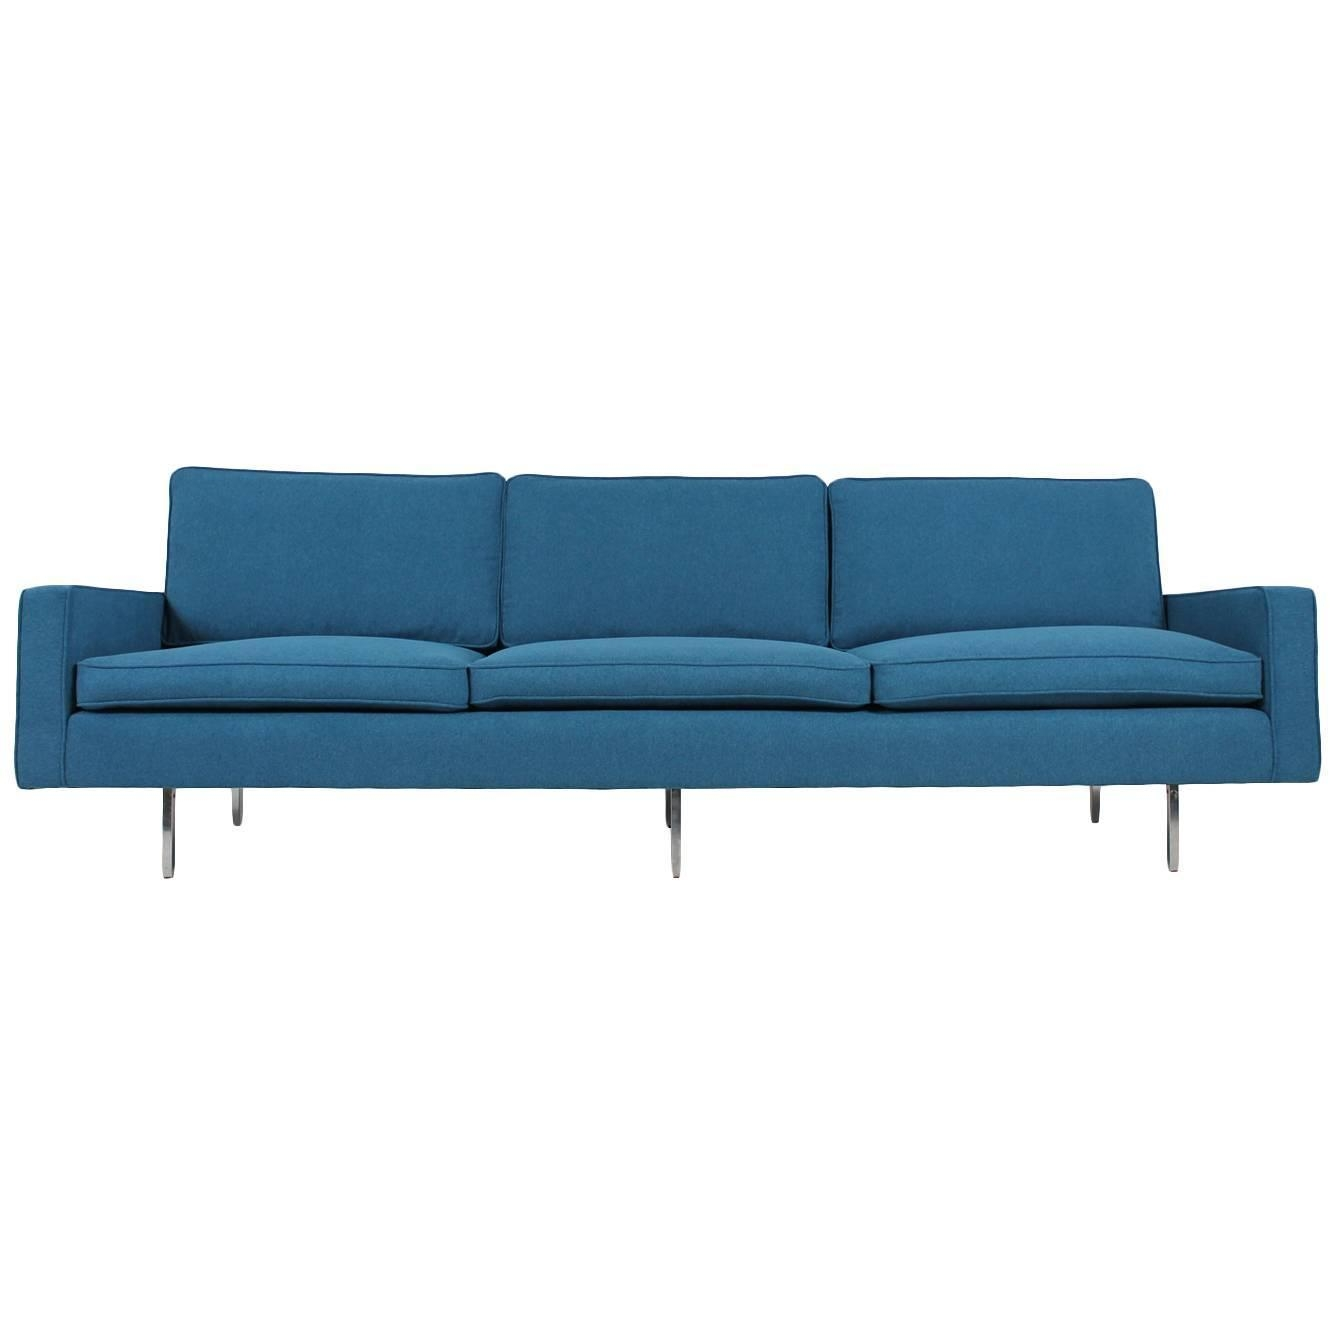 Beautiful Mid Century Florence Knoll Sofa Mod (View 14 of 20)